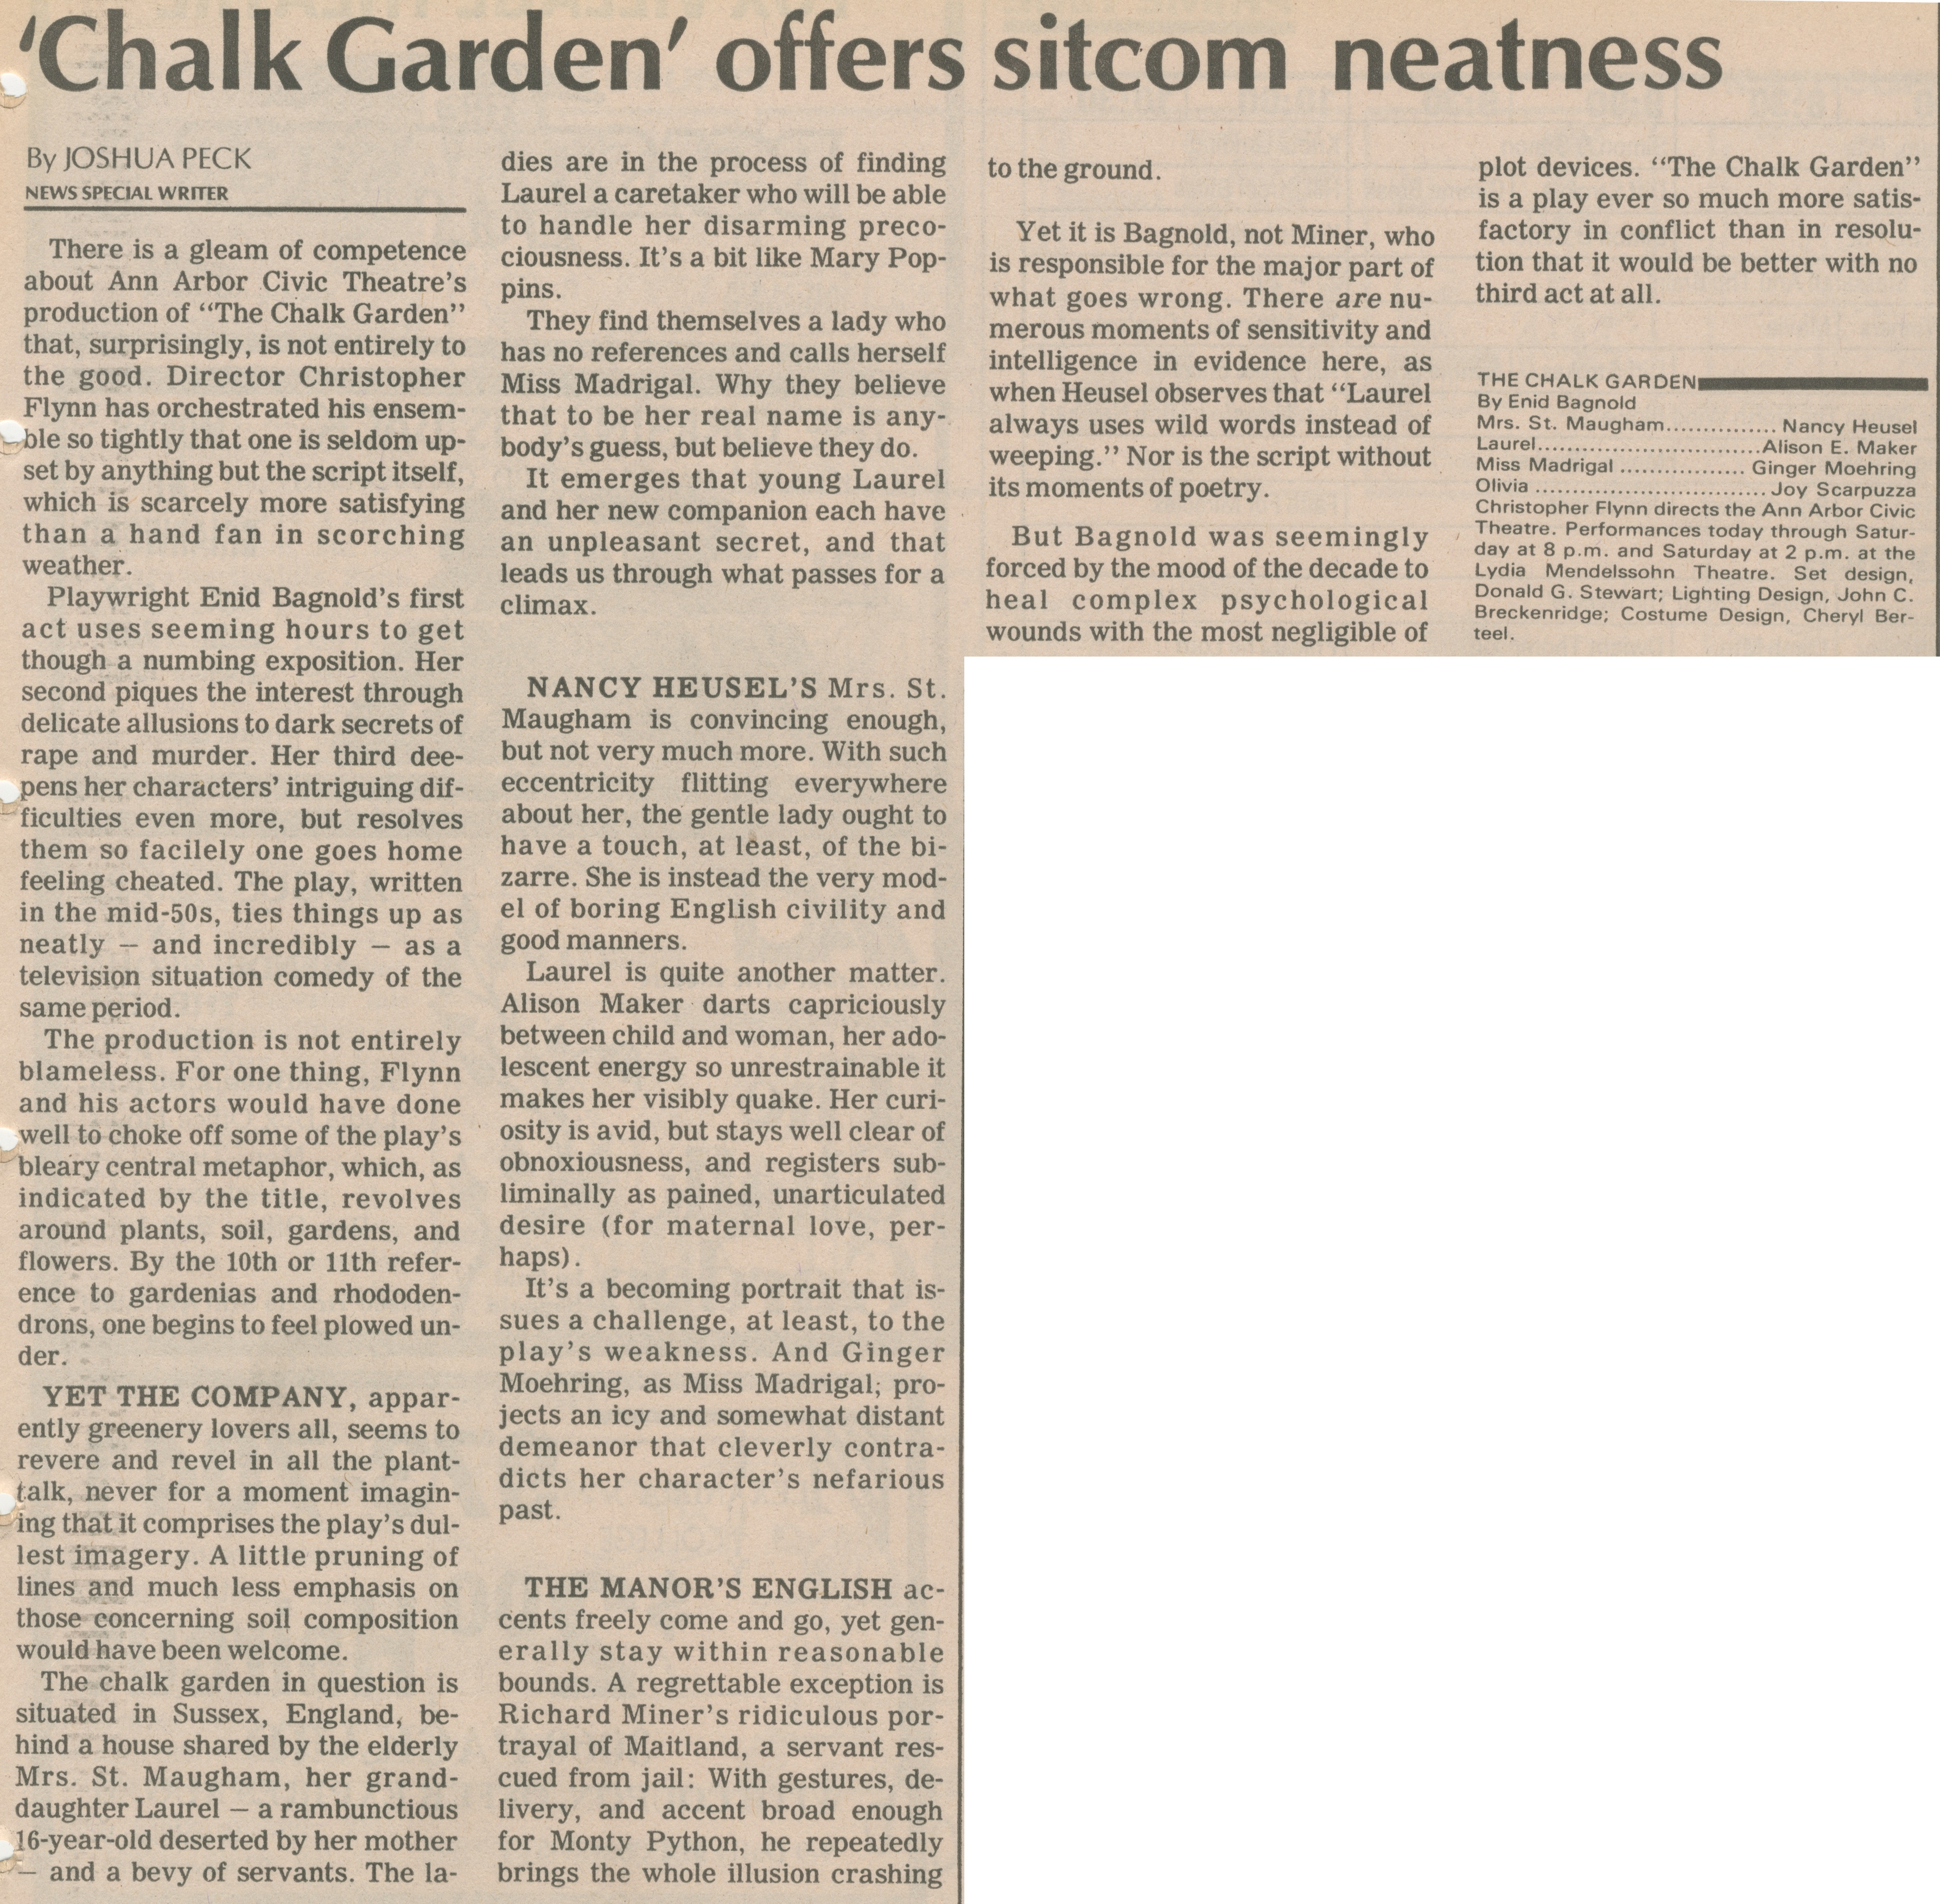 'Chalk Garden' Offers Sitcom Neatness image